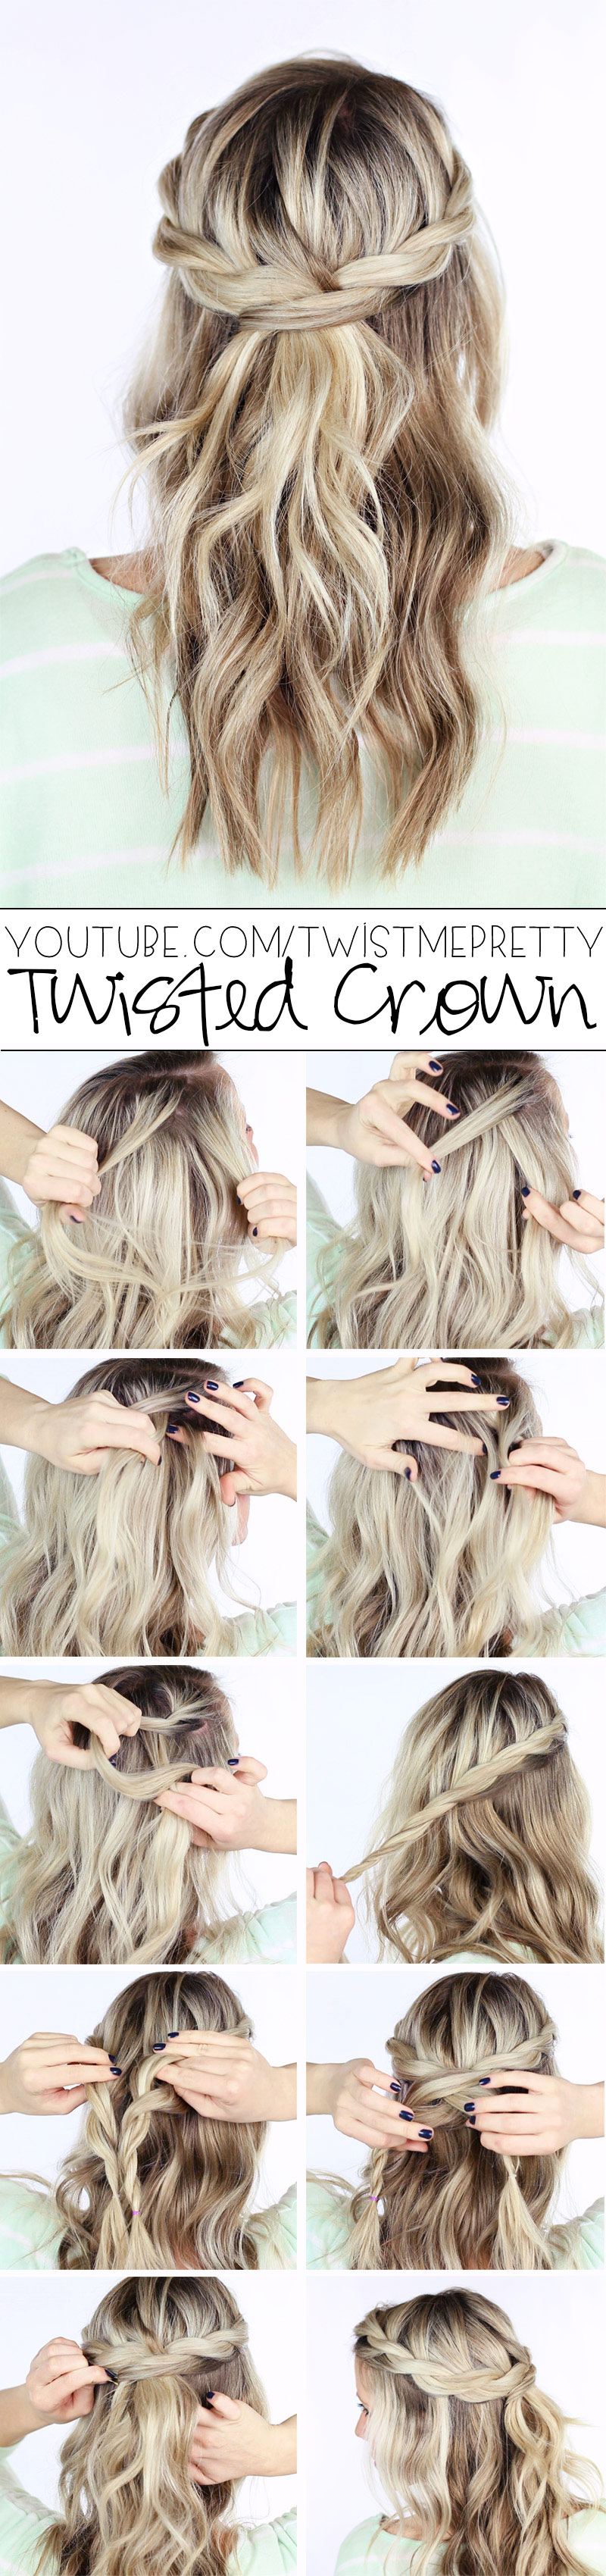 twisted crown tutorial for wedding